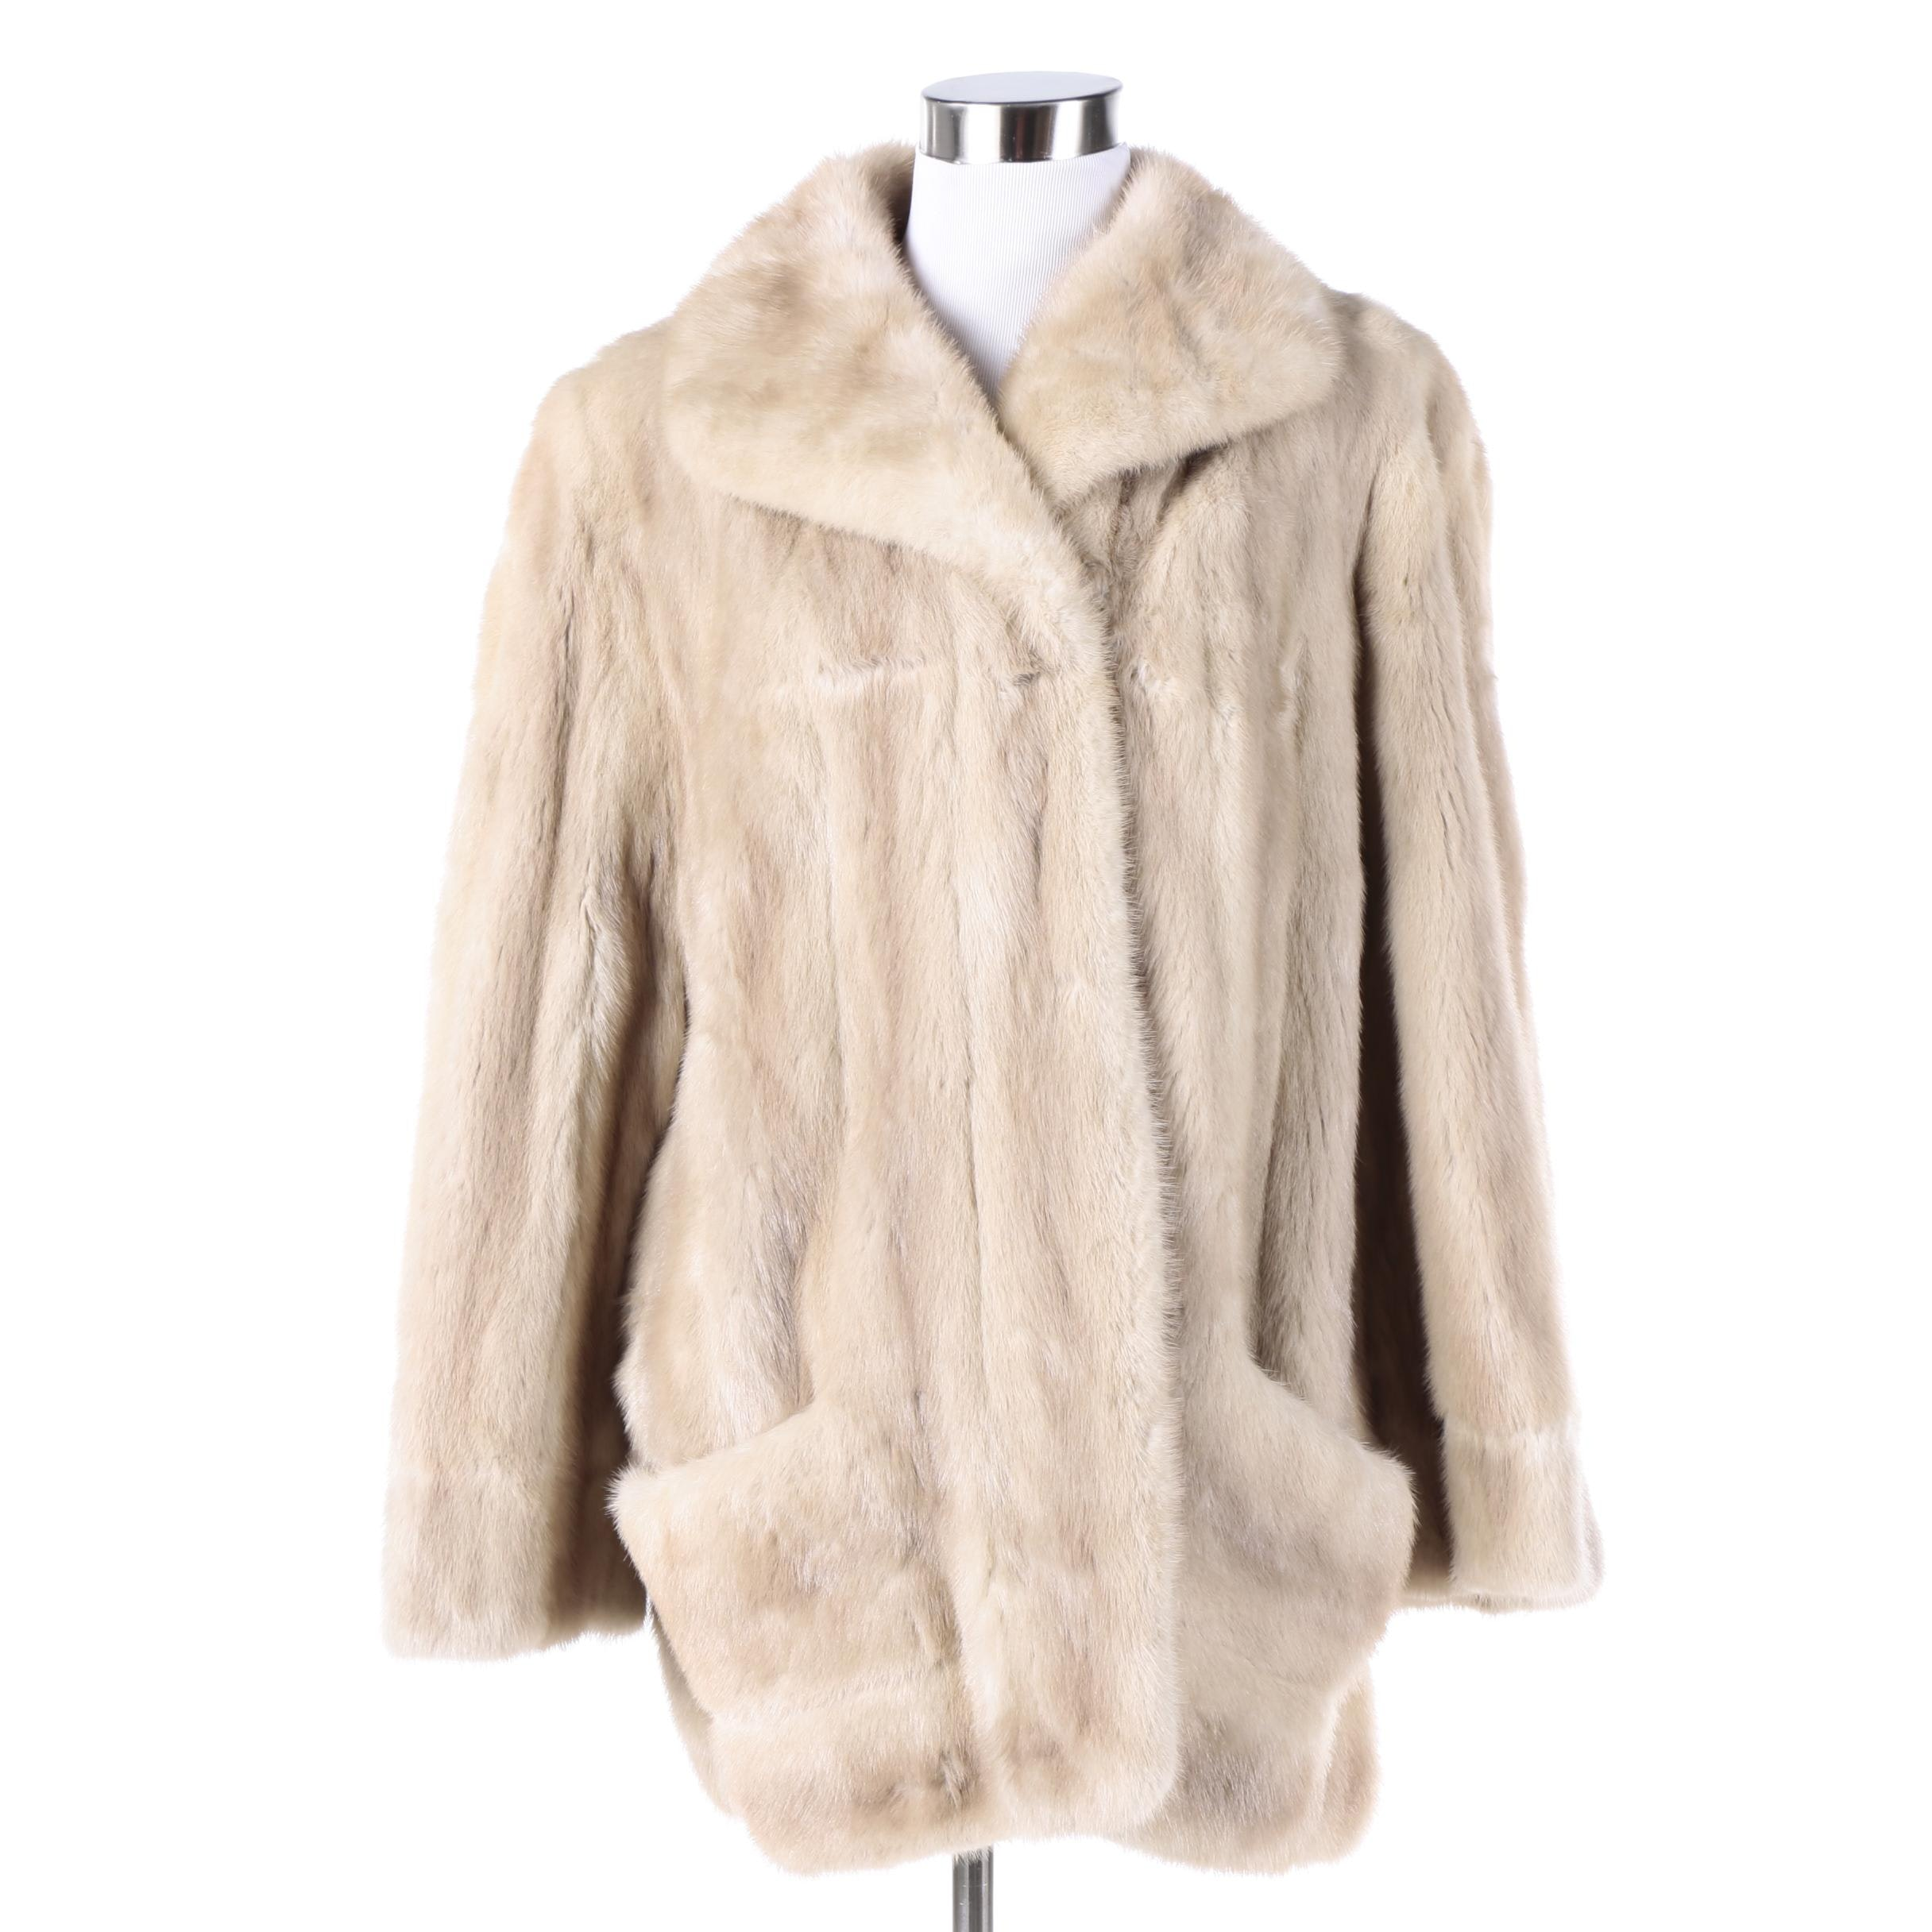 Vintage Blonde Mink Fur Coat